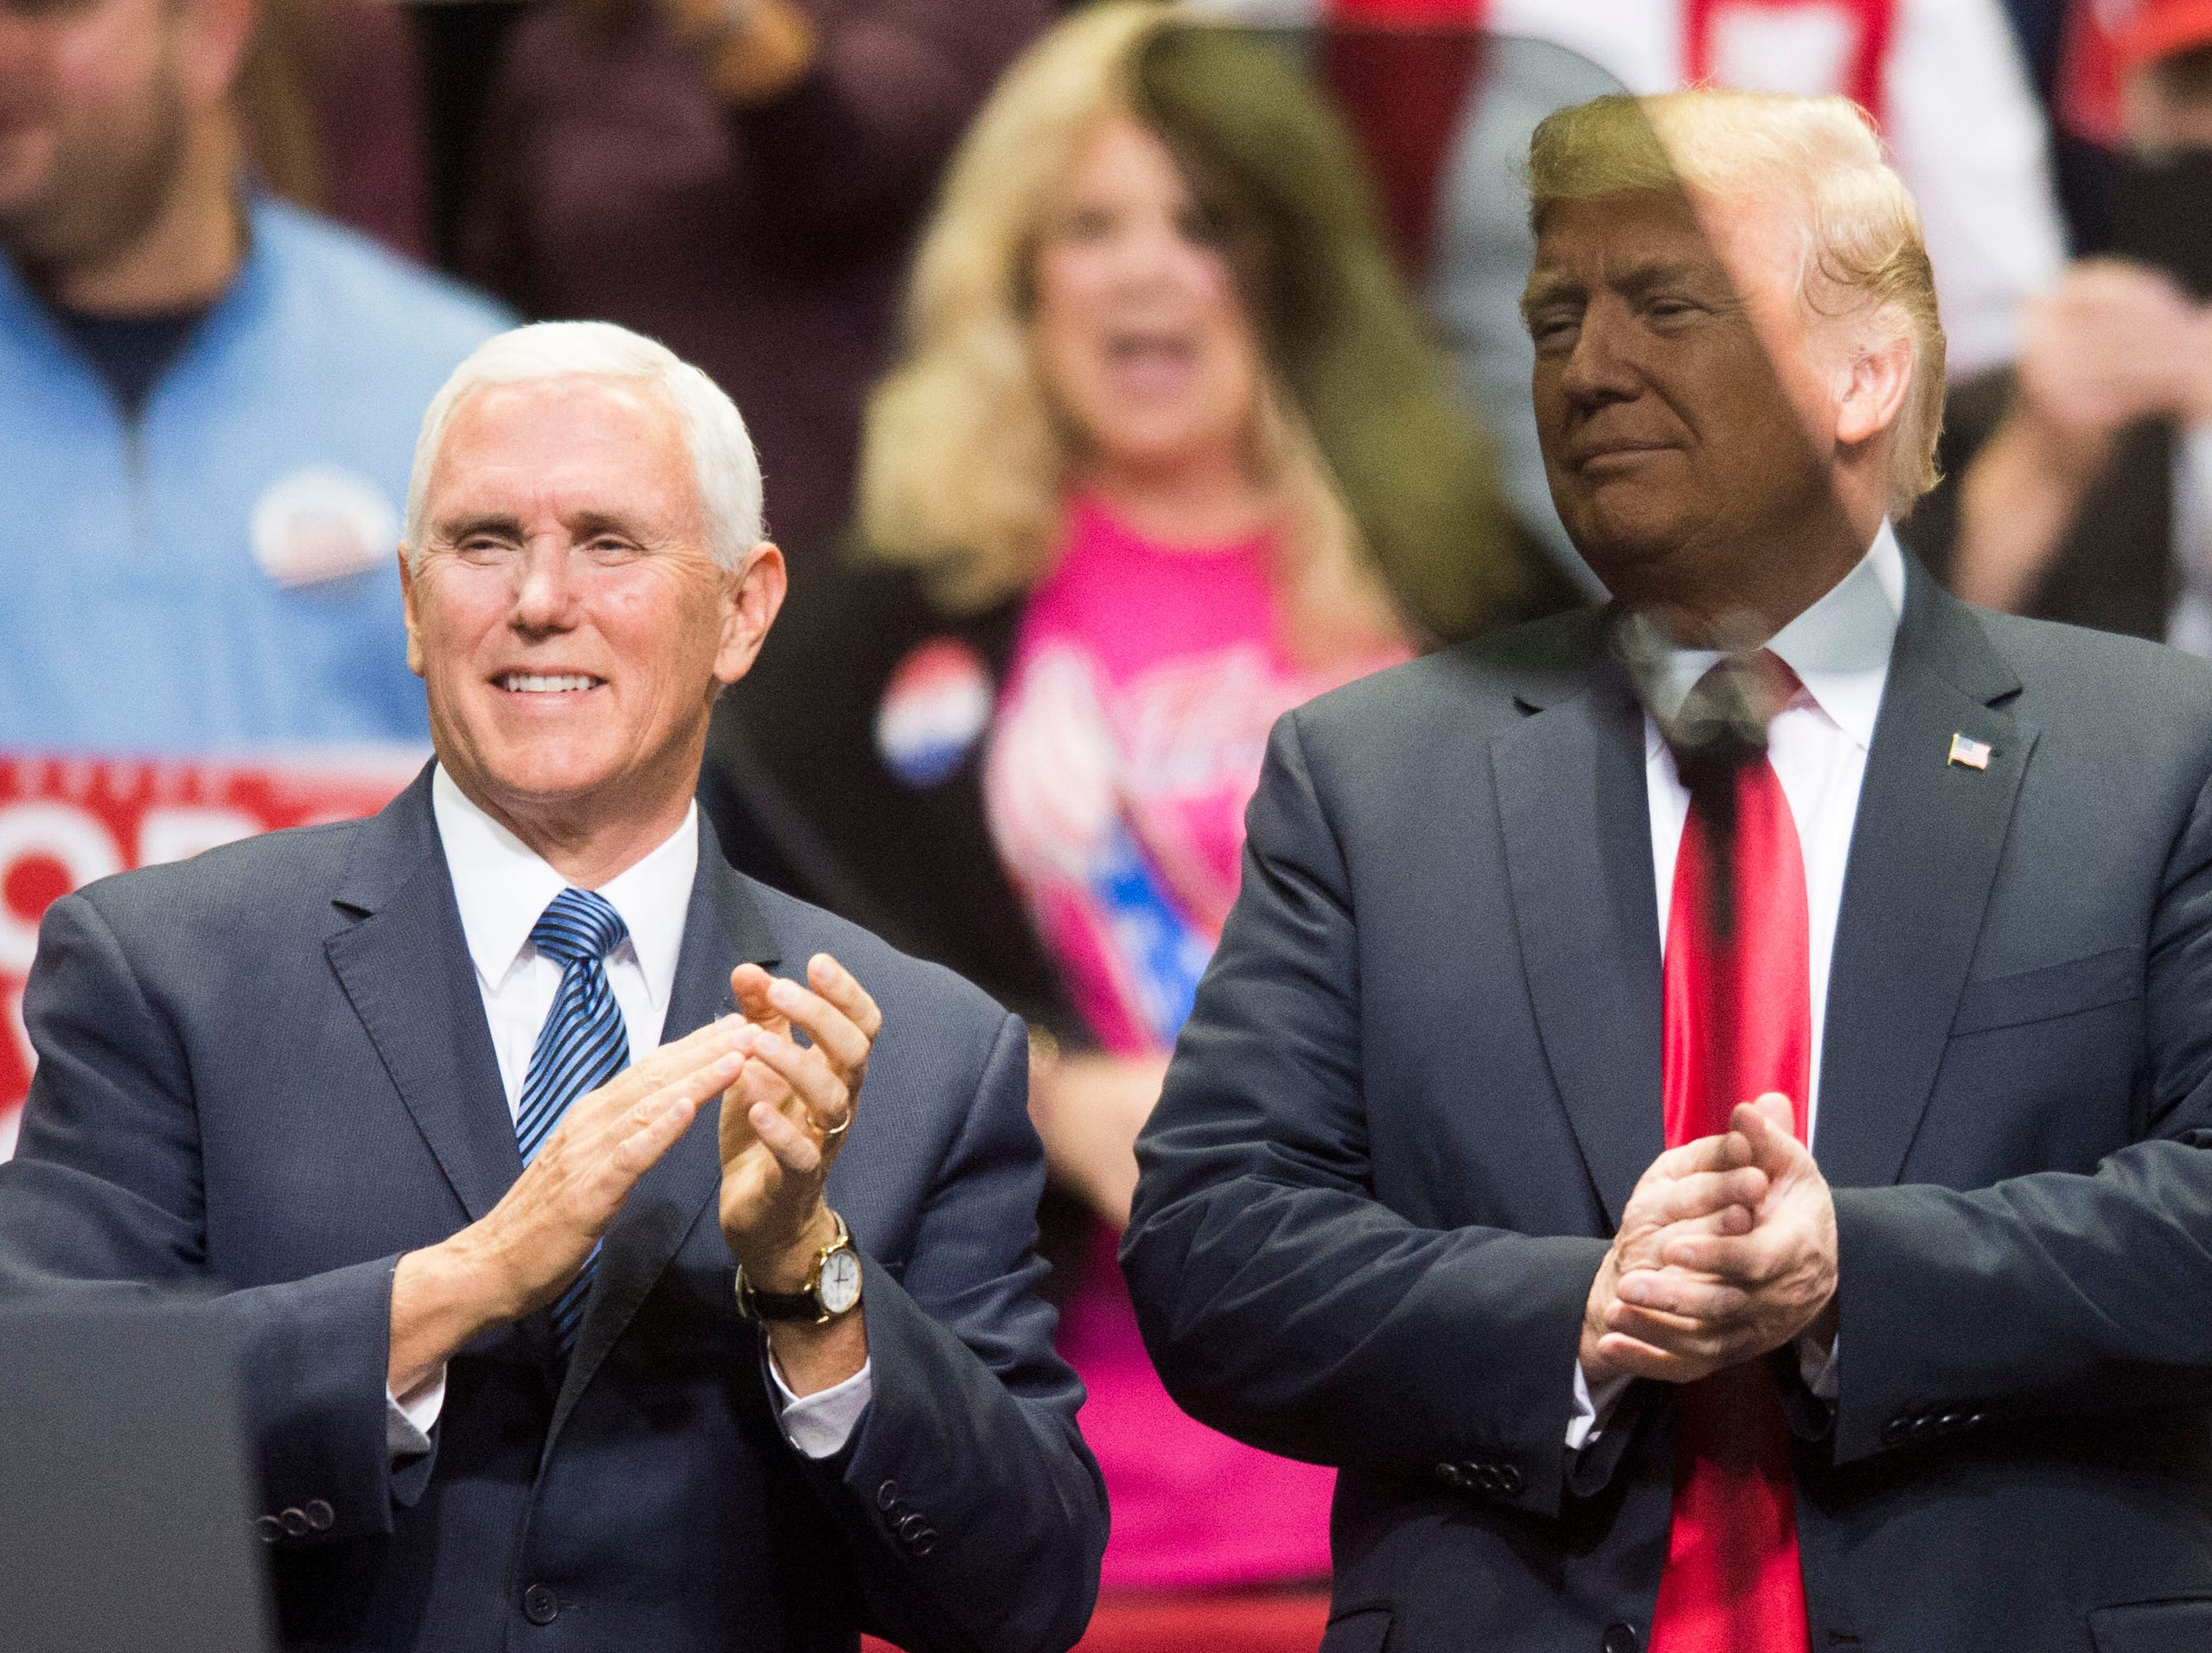 Vice President Mike Pence and President Donald Trump stand on stage during a Donald Trump rally in support of U.S. Rep. Marsha Blackburn for the U.S. Senate at McKenzie Arena in Chattanooga, Sunday, Nov. 4, 2018.